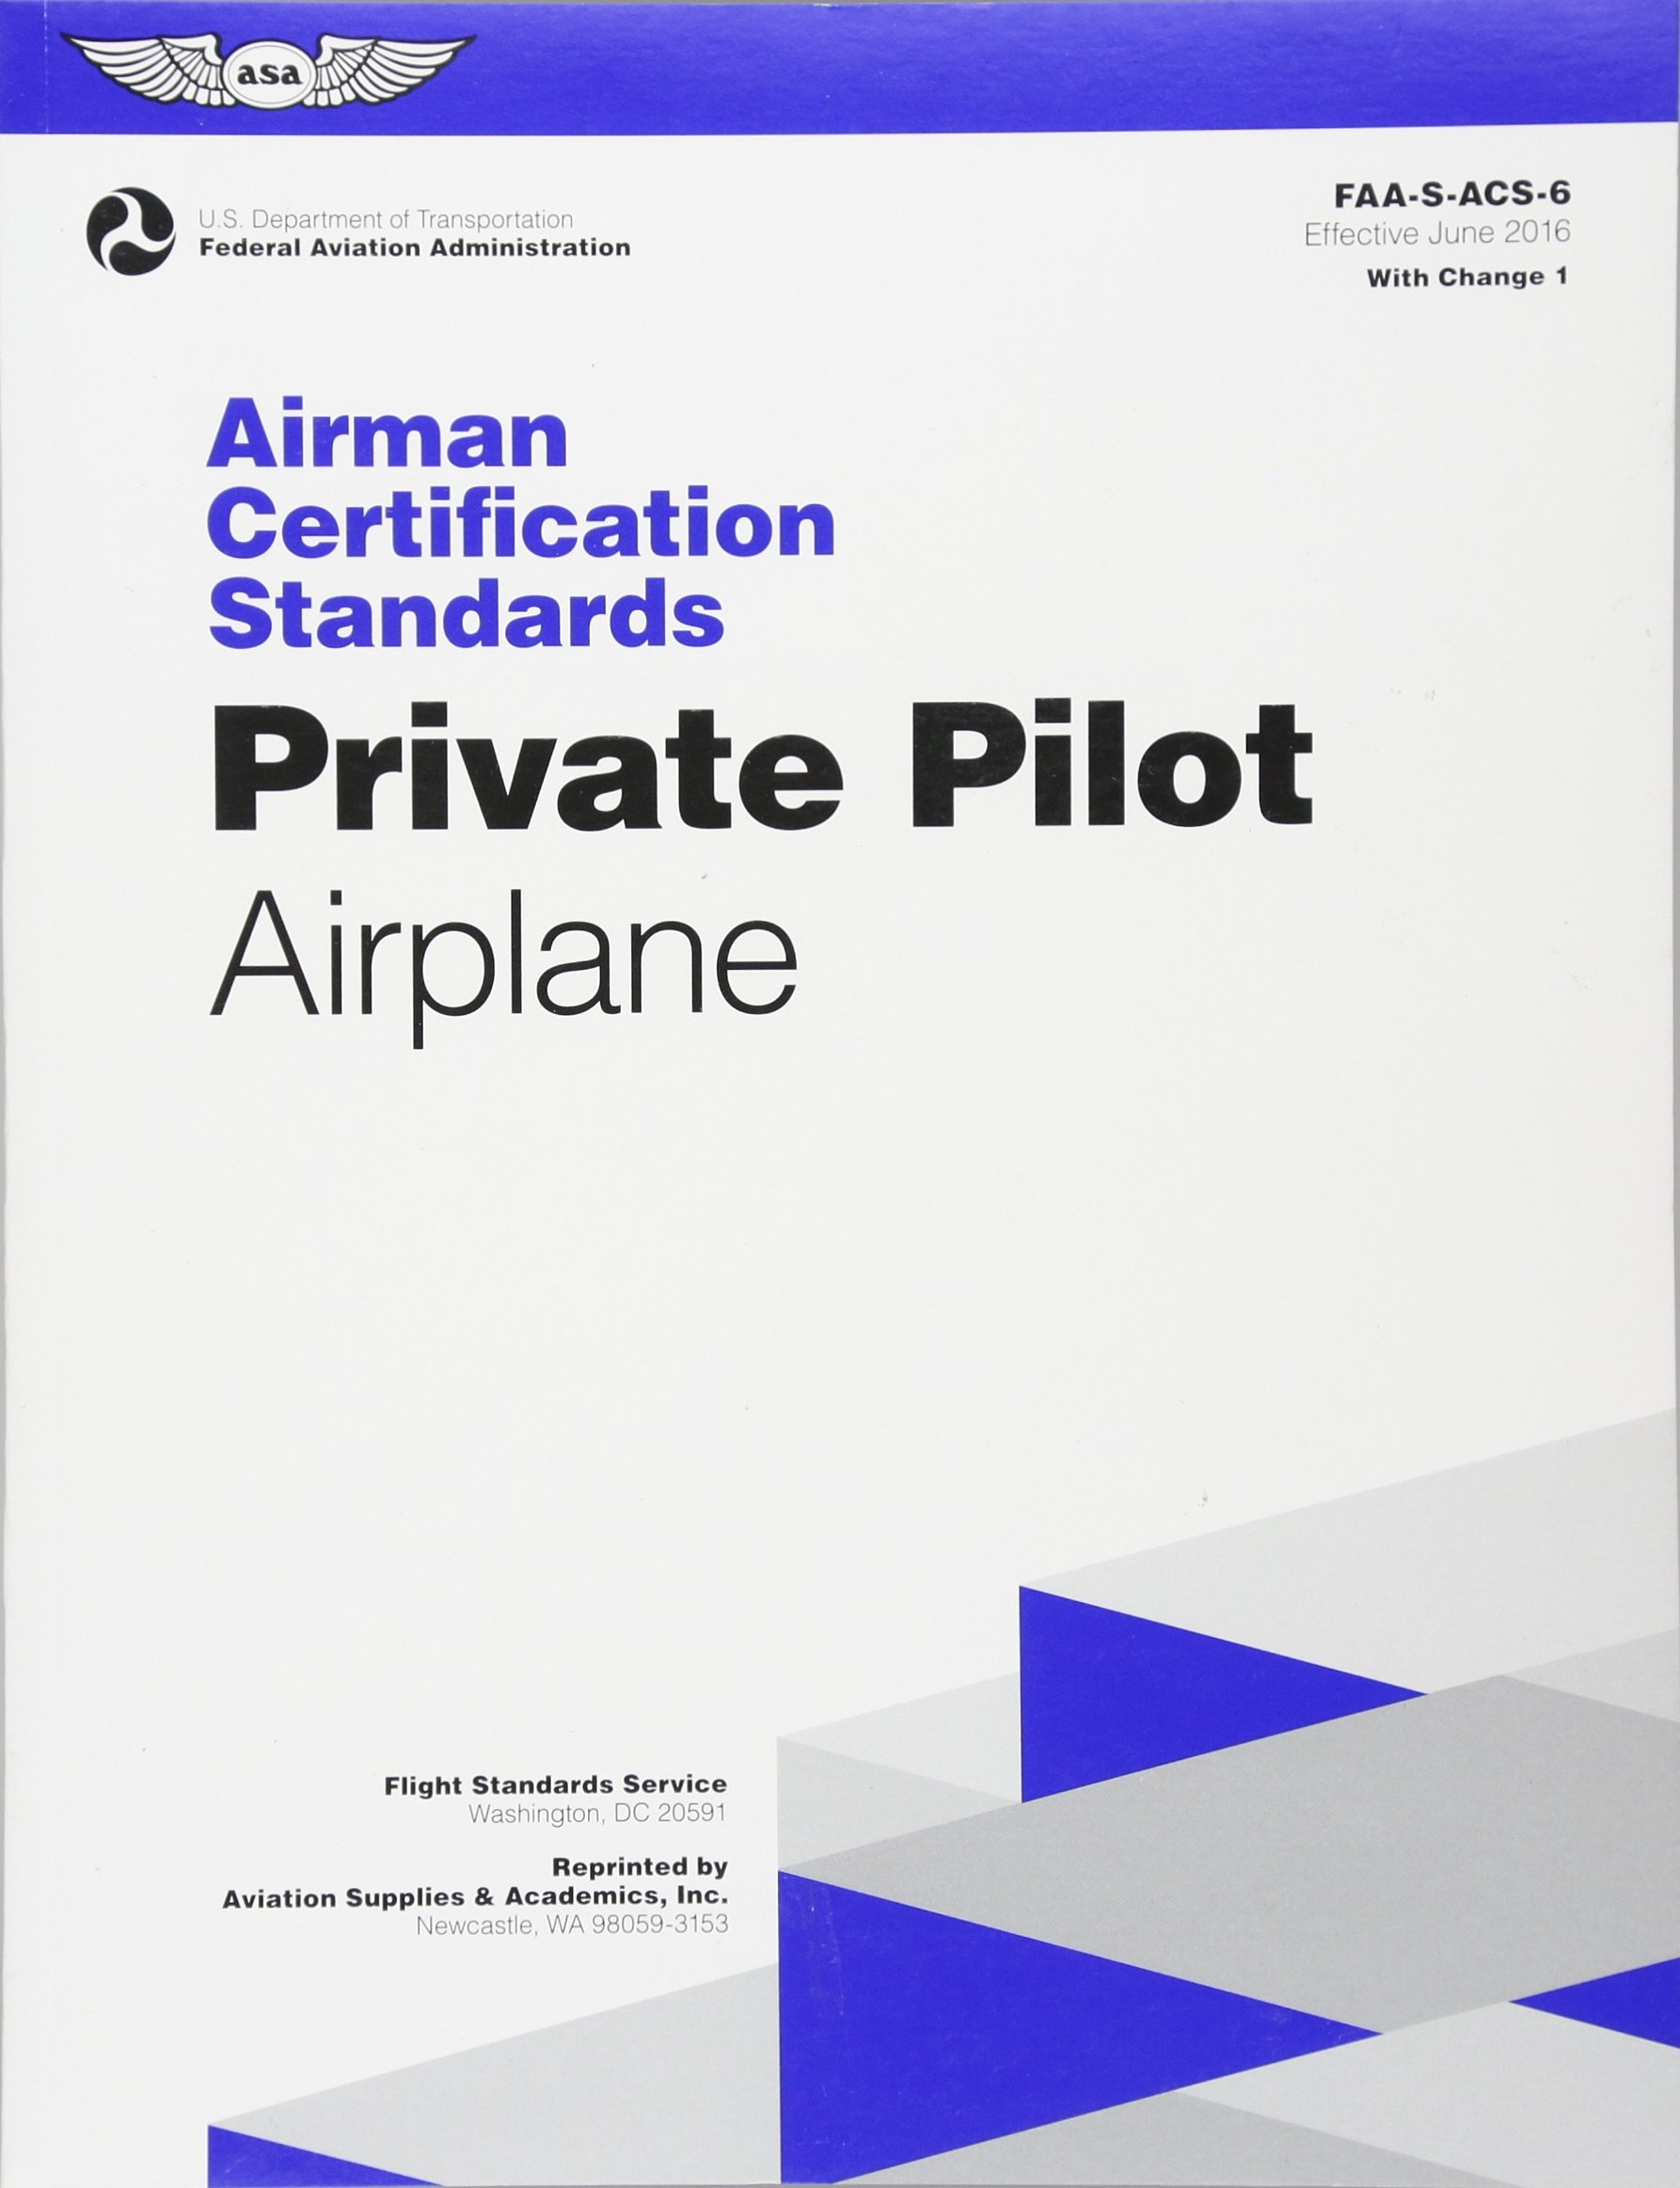 Private pilot airman certification standards airplane faa s acs private pilot airman certification standards airplane faa s acs 6 for airplane single and multi engine land and sea practical test standards series xflitez Choice Image